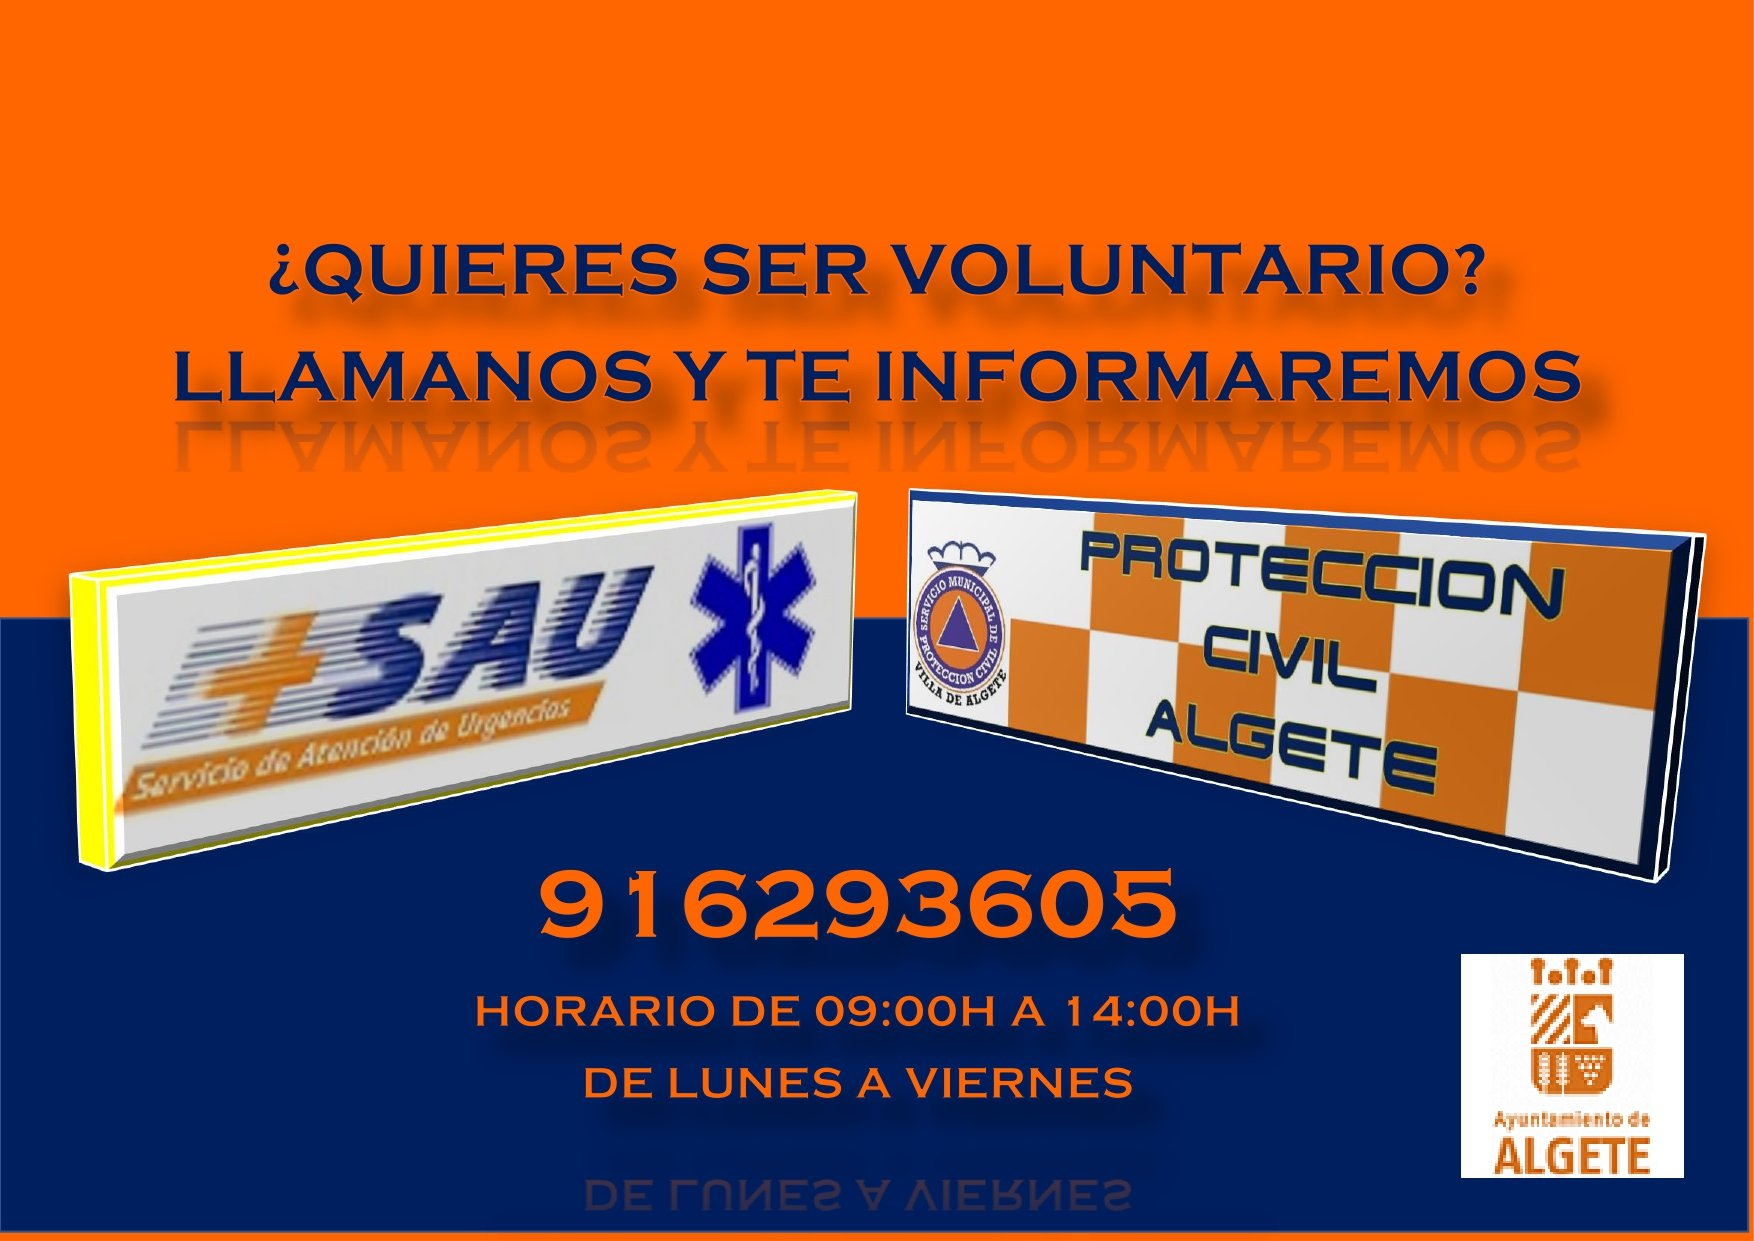 voluntario protección civil algete